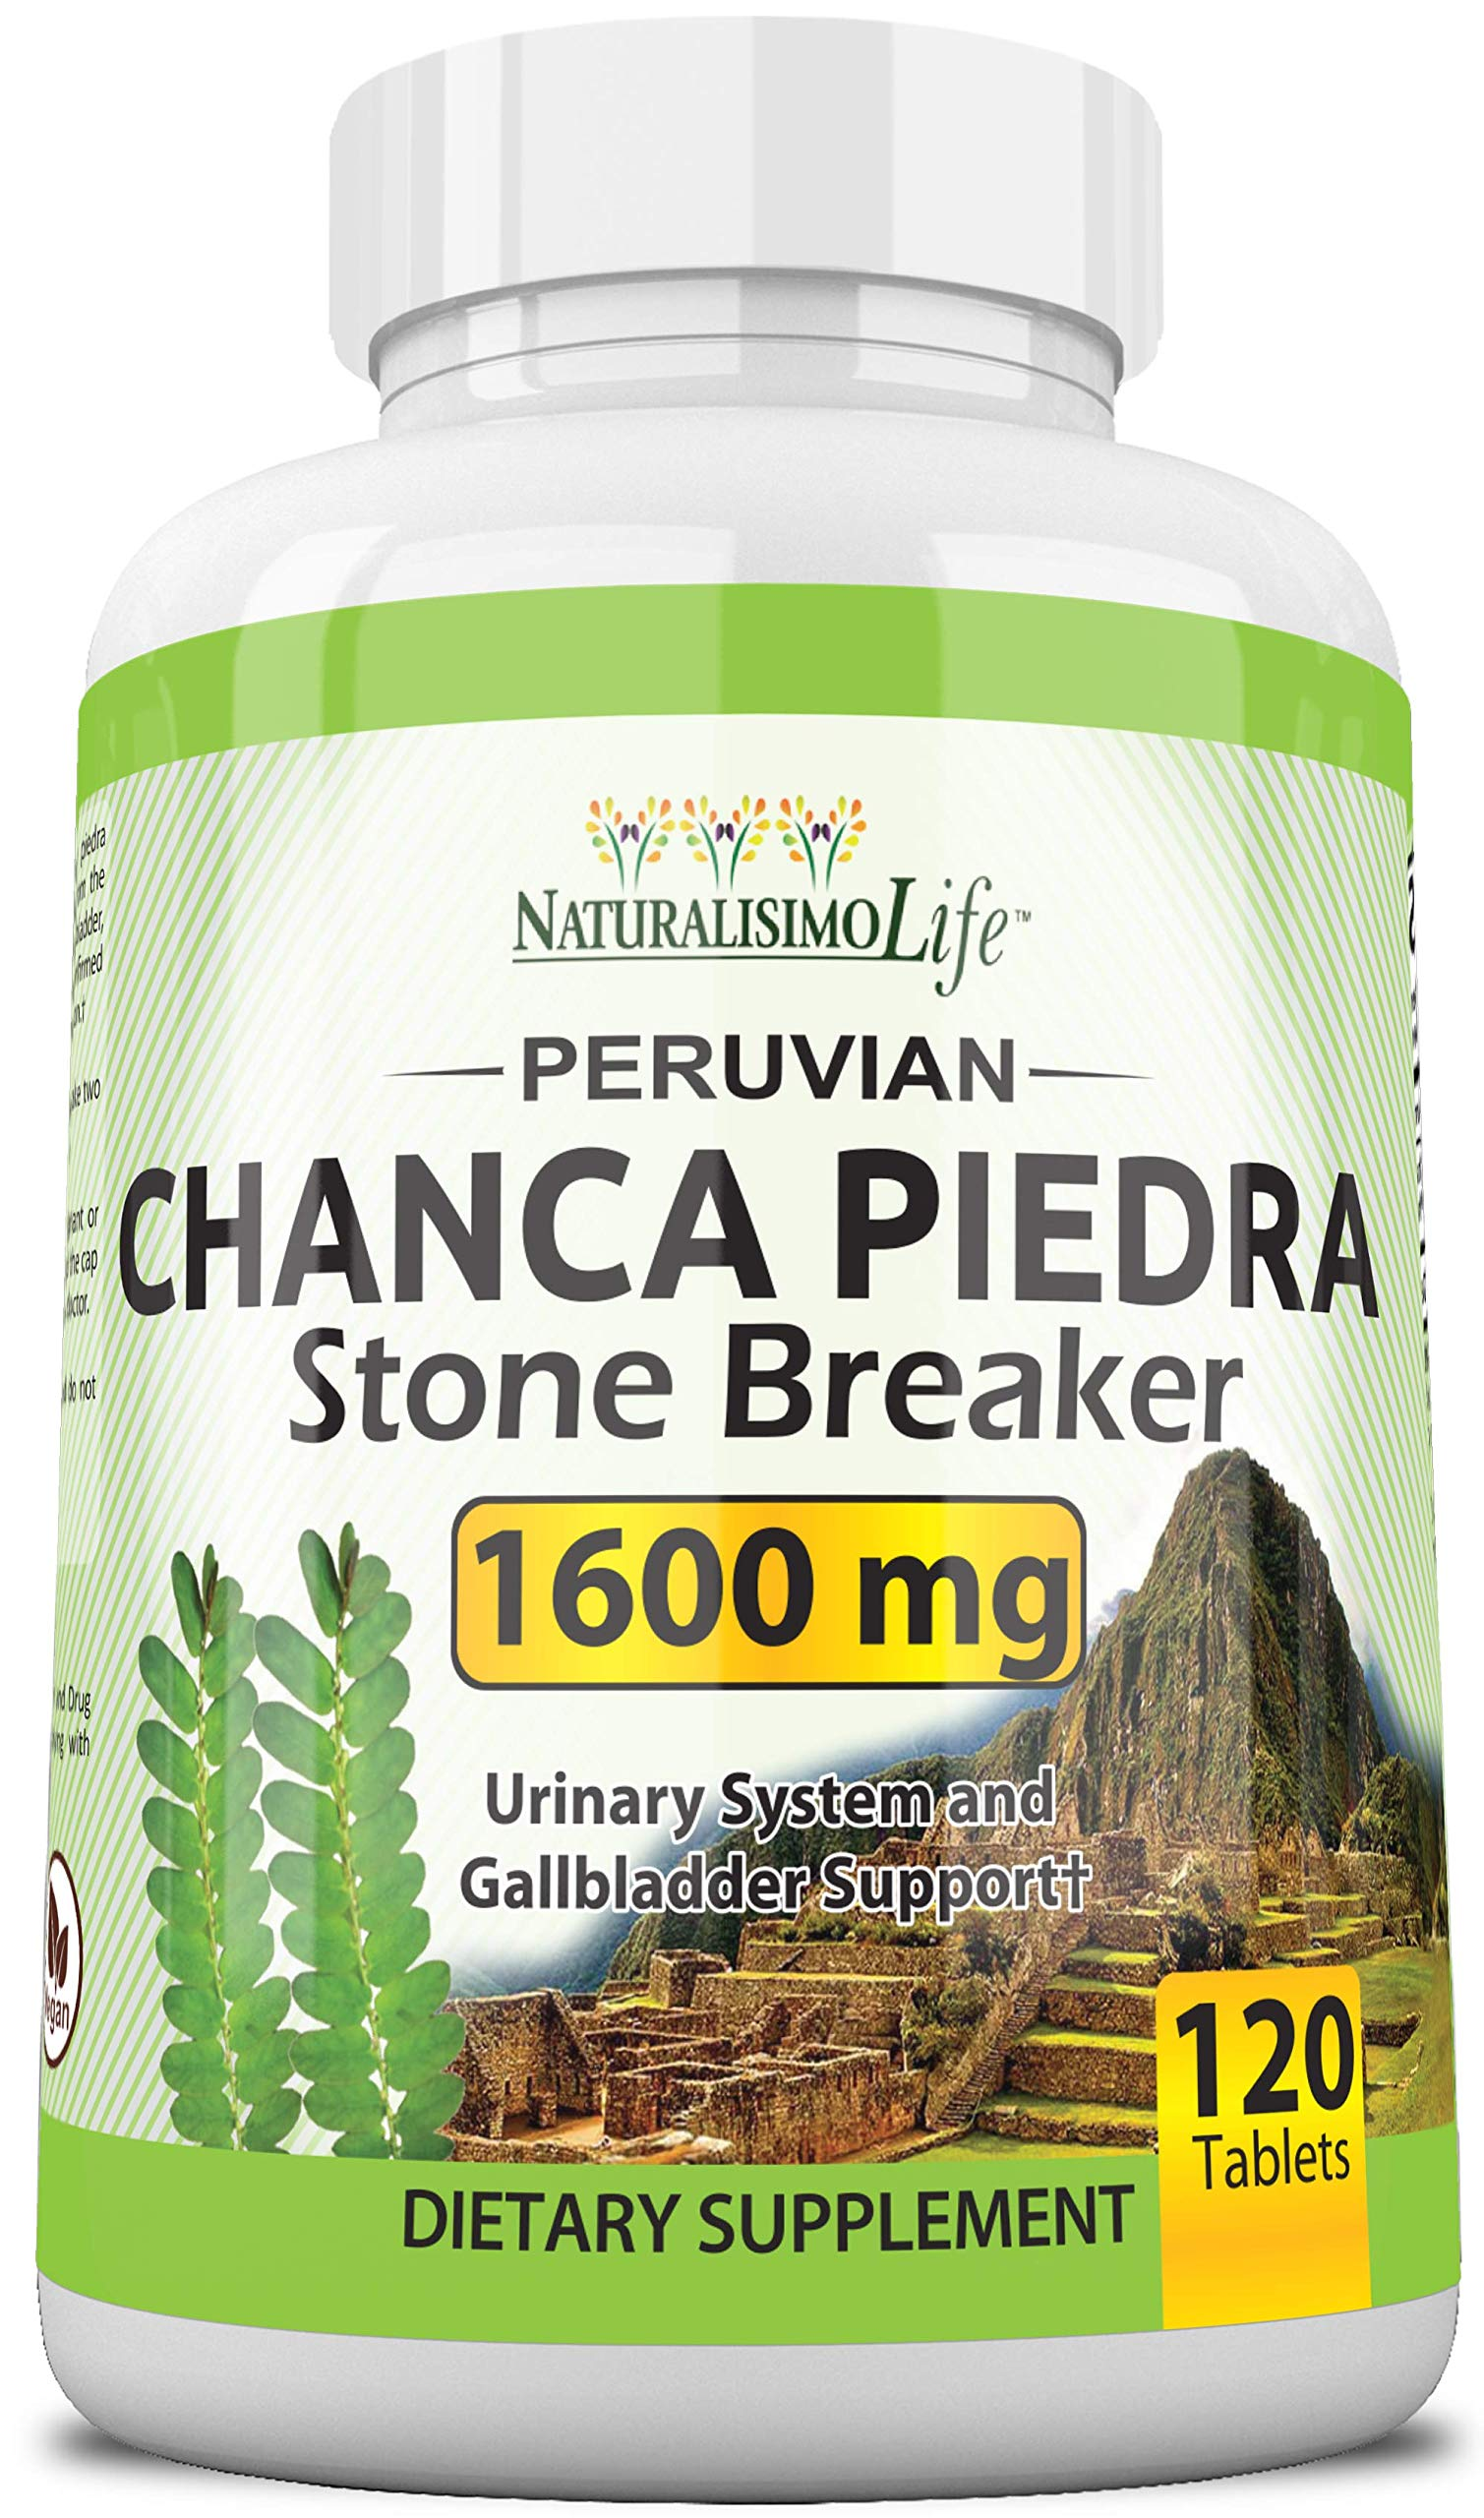 Chanca Piedra 1600 mg - 120 Tablets Kidney Stone Crusher Gallbladder Support Peruvian Chanca Piedra Made in The USA